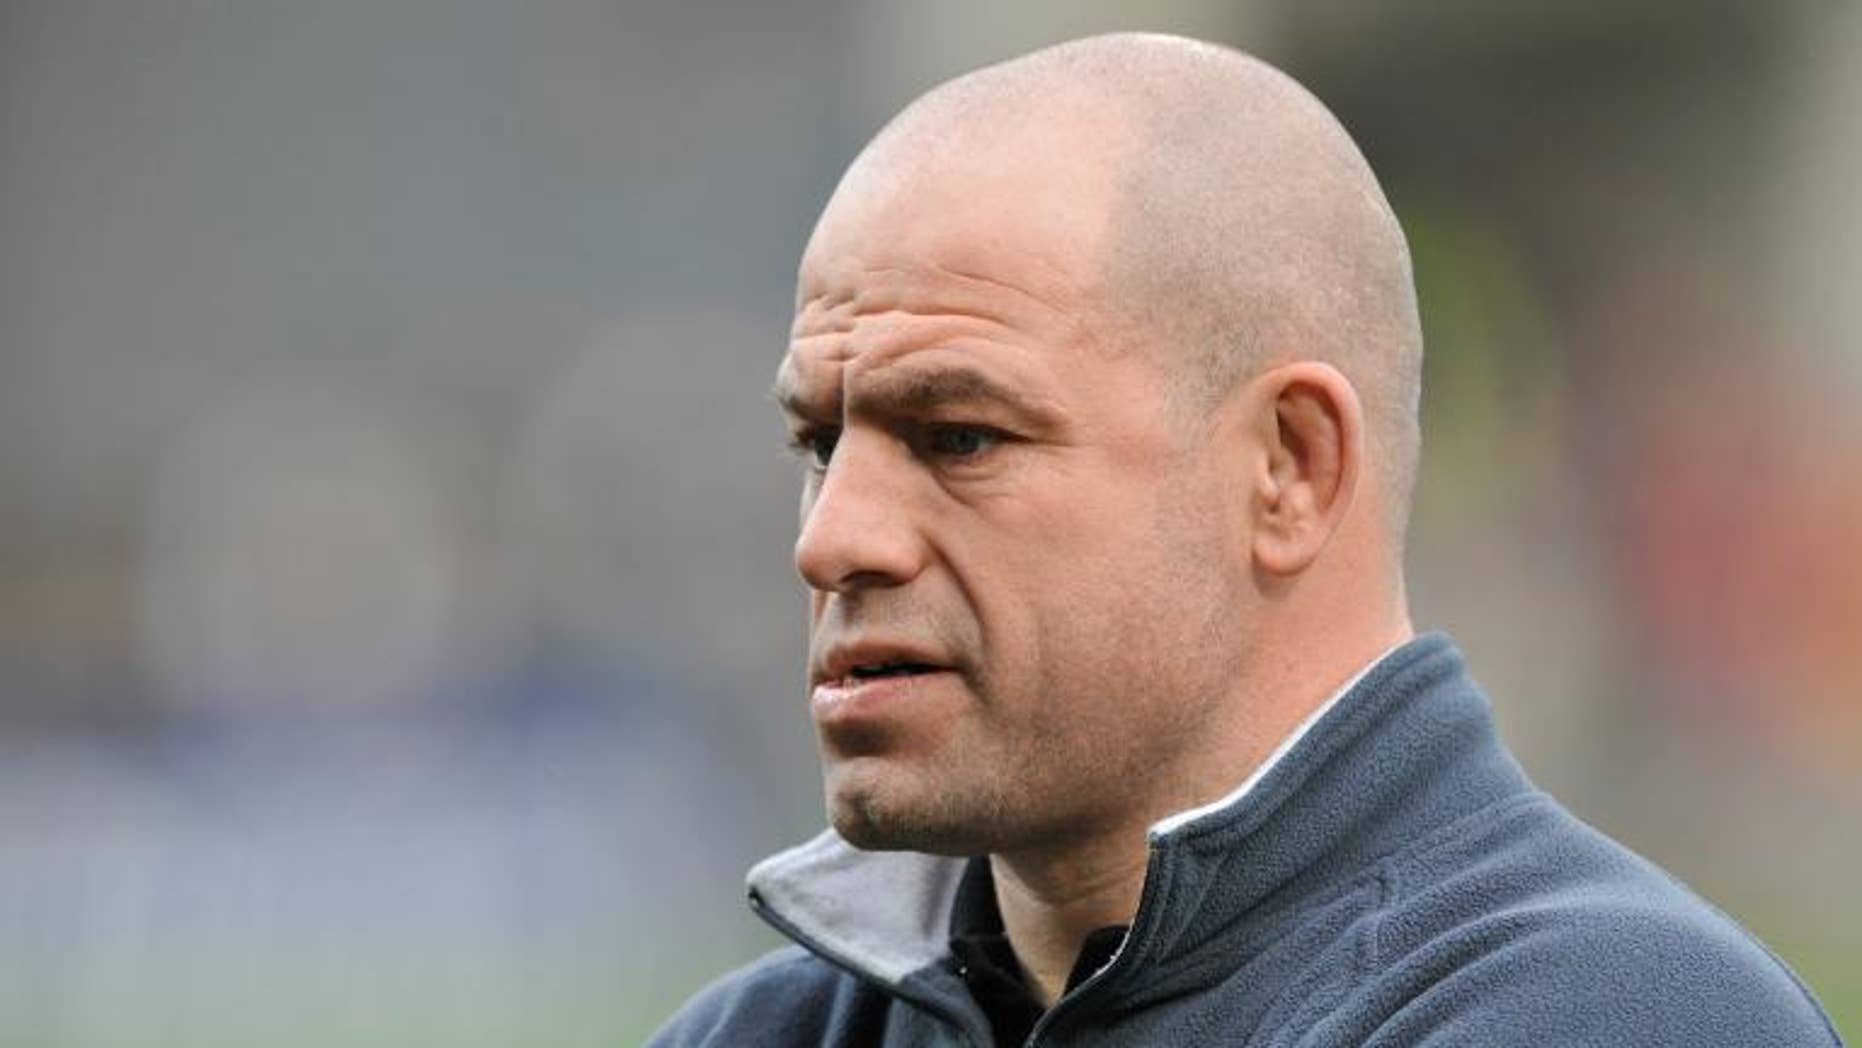 Leicester Tigers head coach Richard Cockerill has pleaded with rugby???s powerbrokers to save the European Cup, after the English and French clubs served notice they will not participate in the European tournament after this season